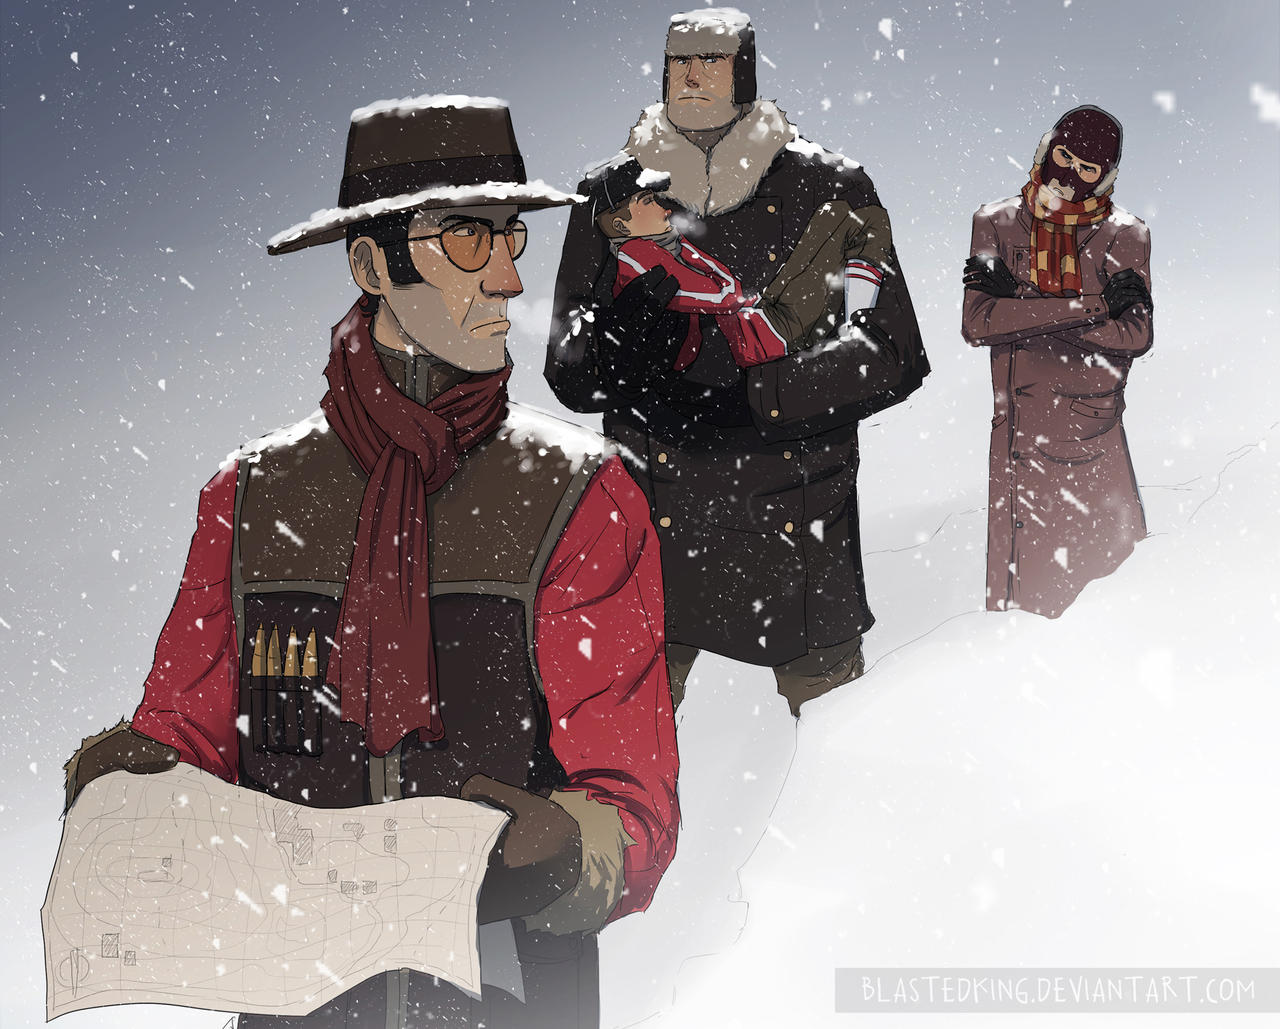 300 In the Snow by BlastedKing